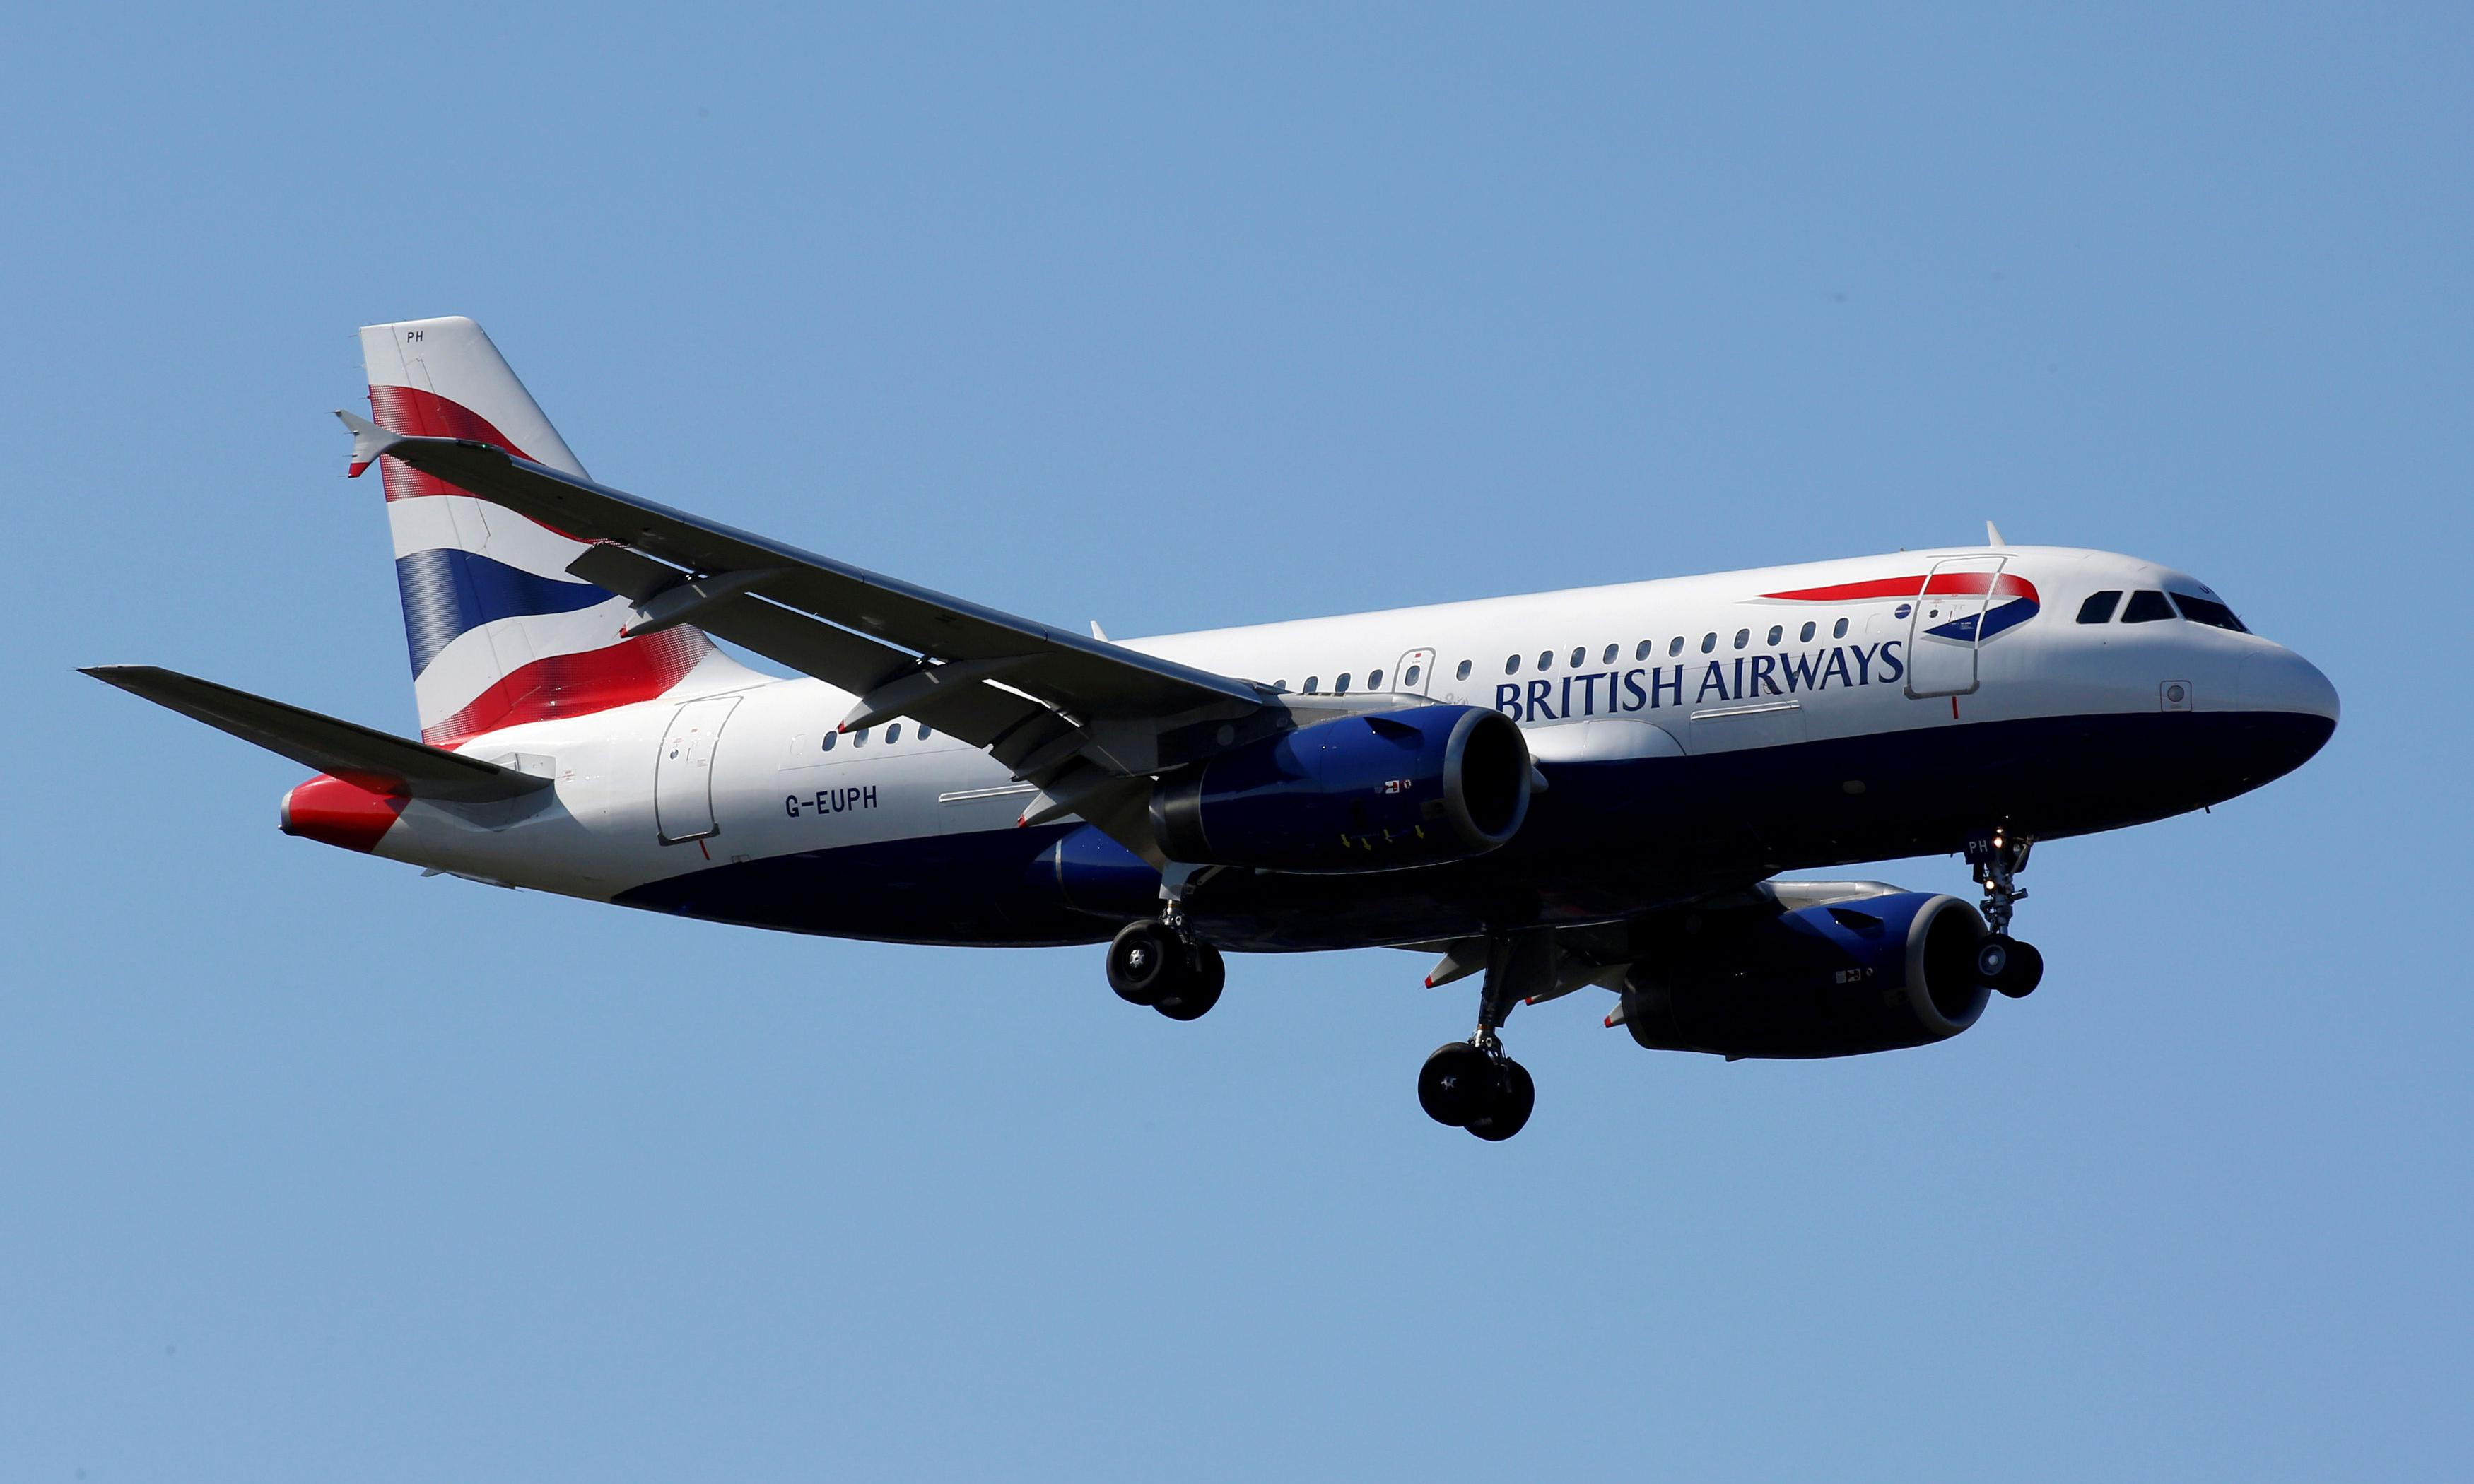 BA to review 'fuel tankering' after Panorama revelations